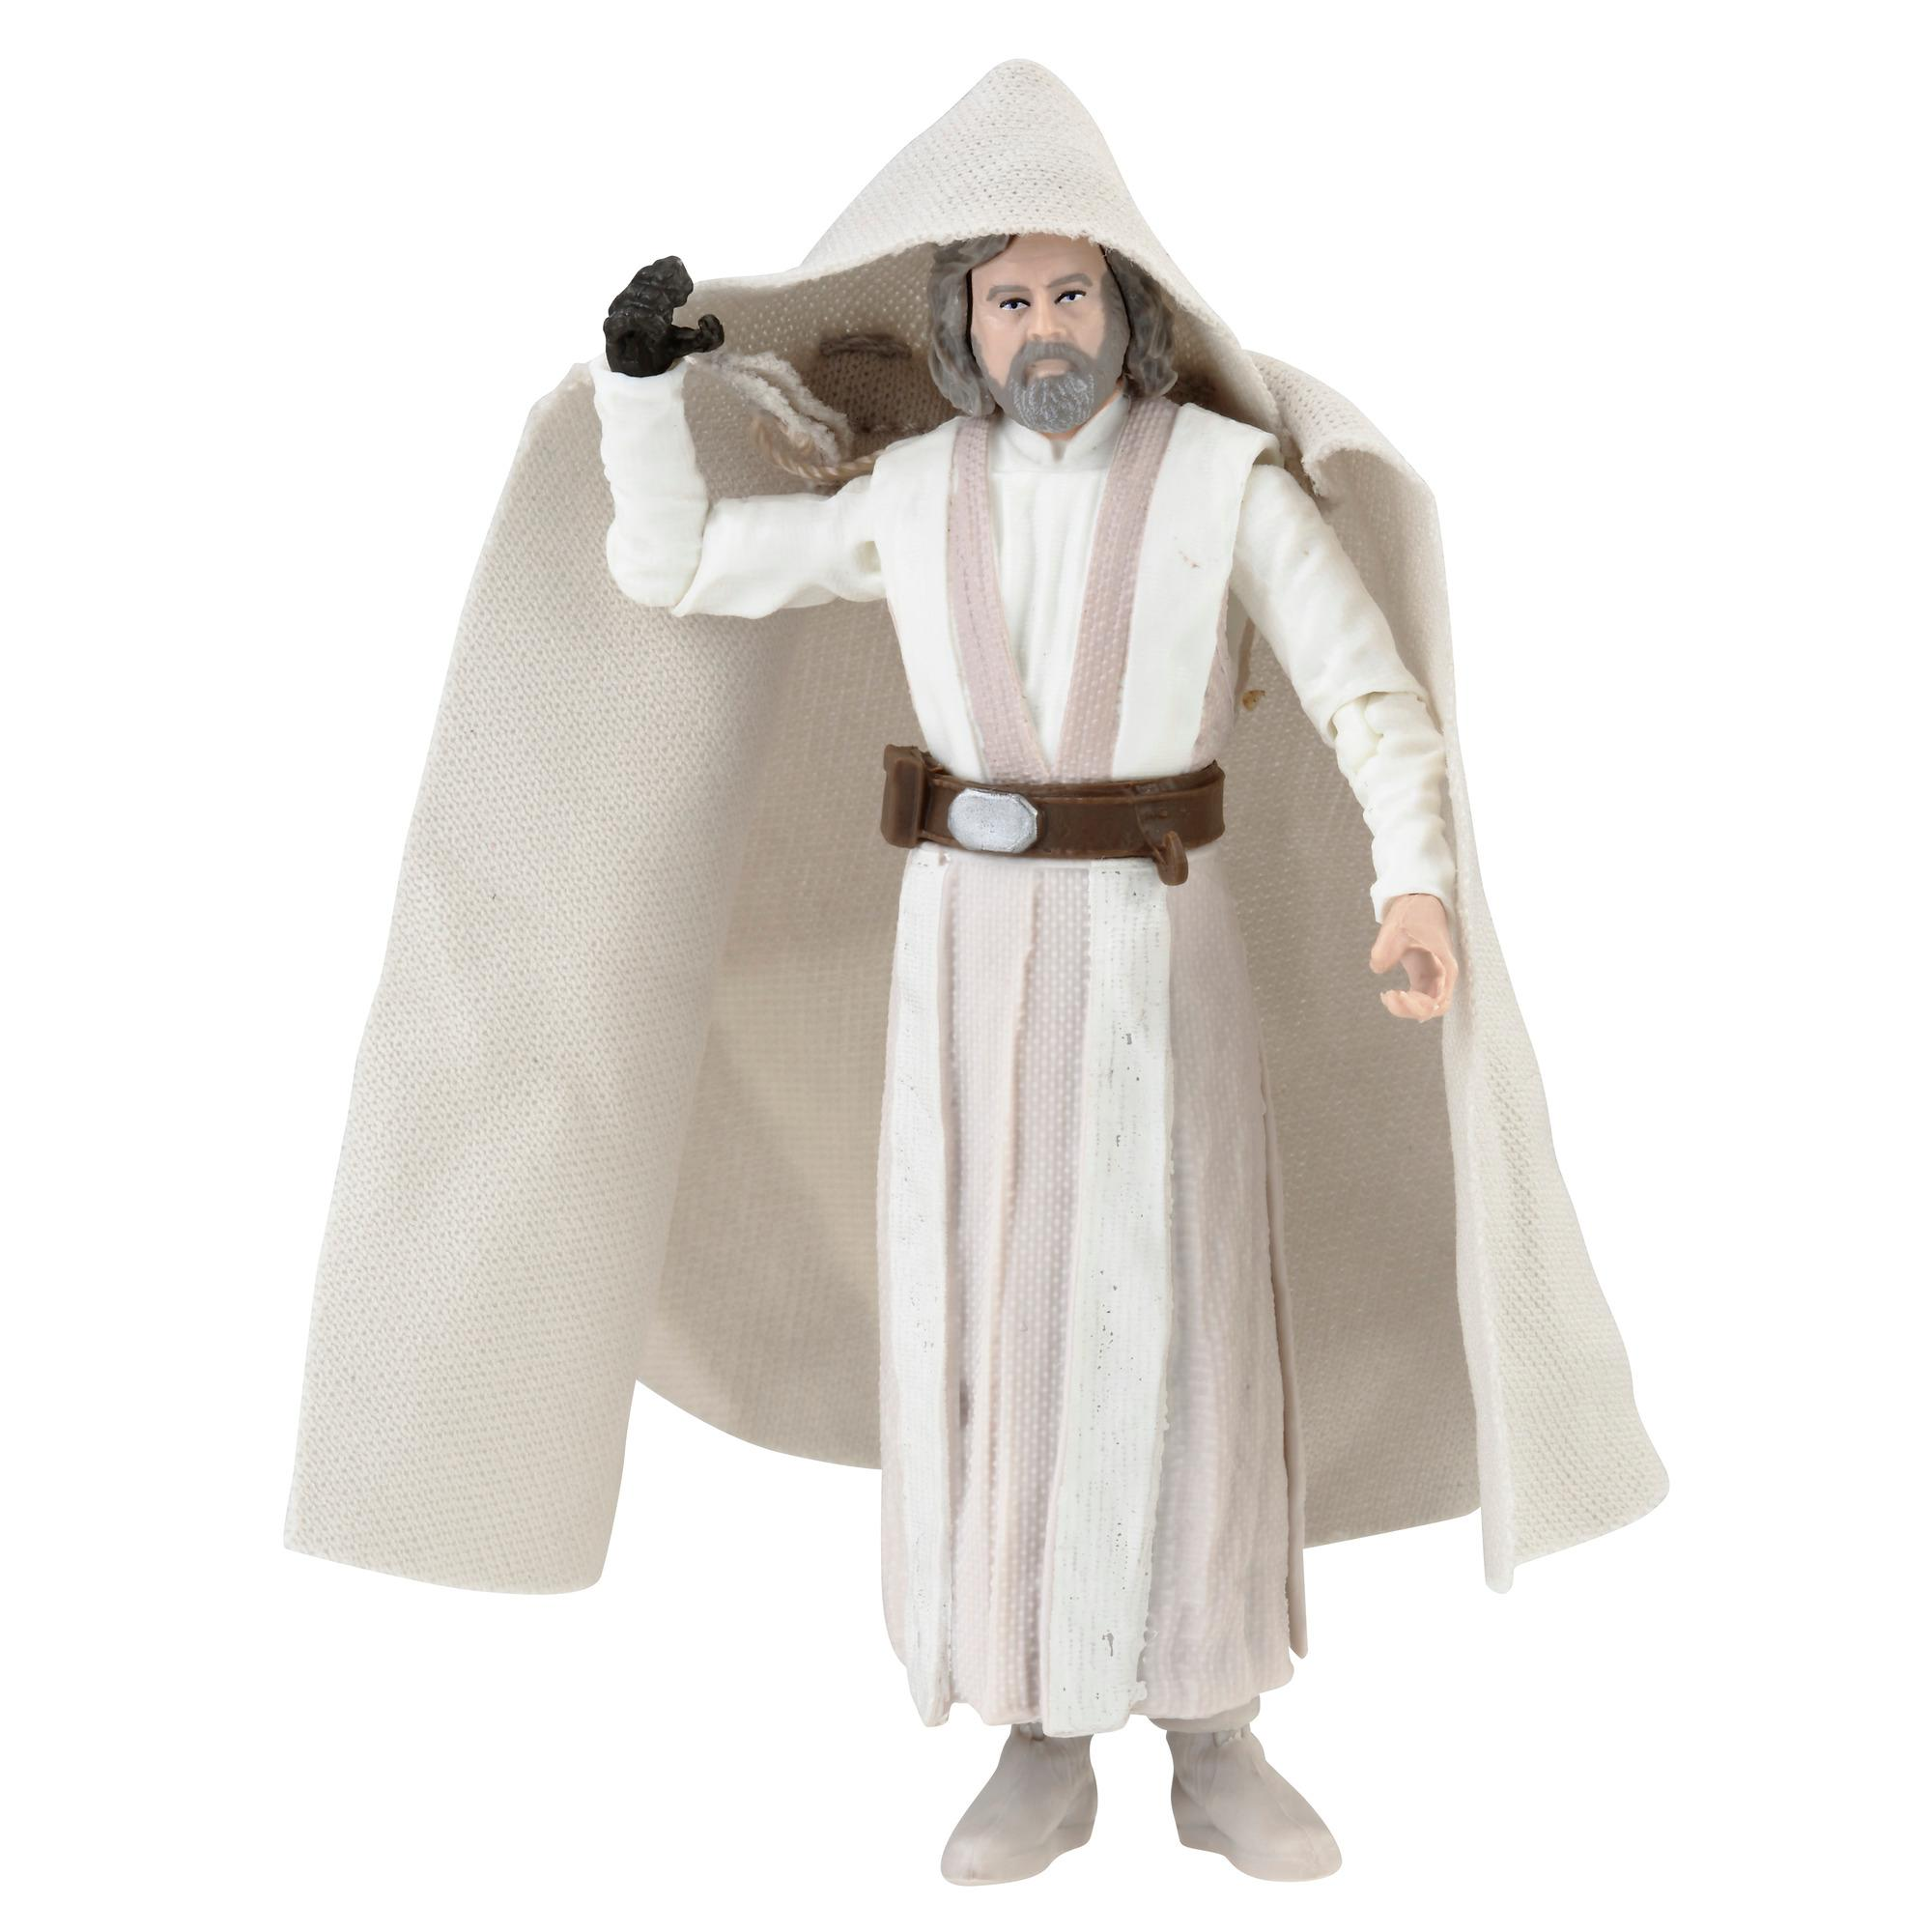 Star Wars - Collection Vintage - Figurine Luke Skywalker (Maître Jedi) de 9,5 cm